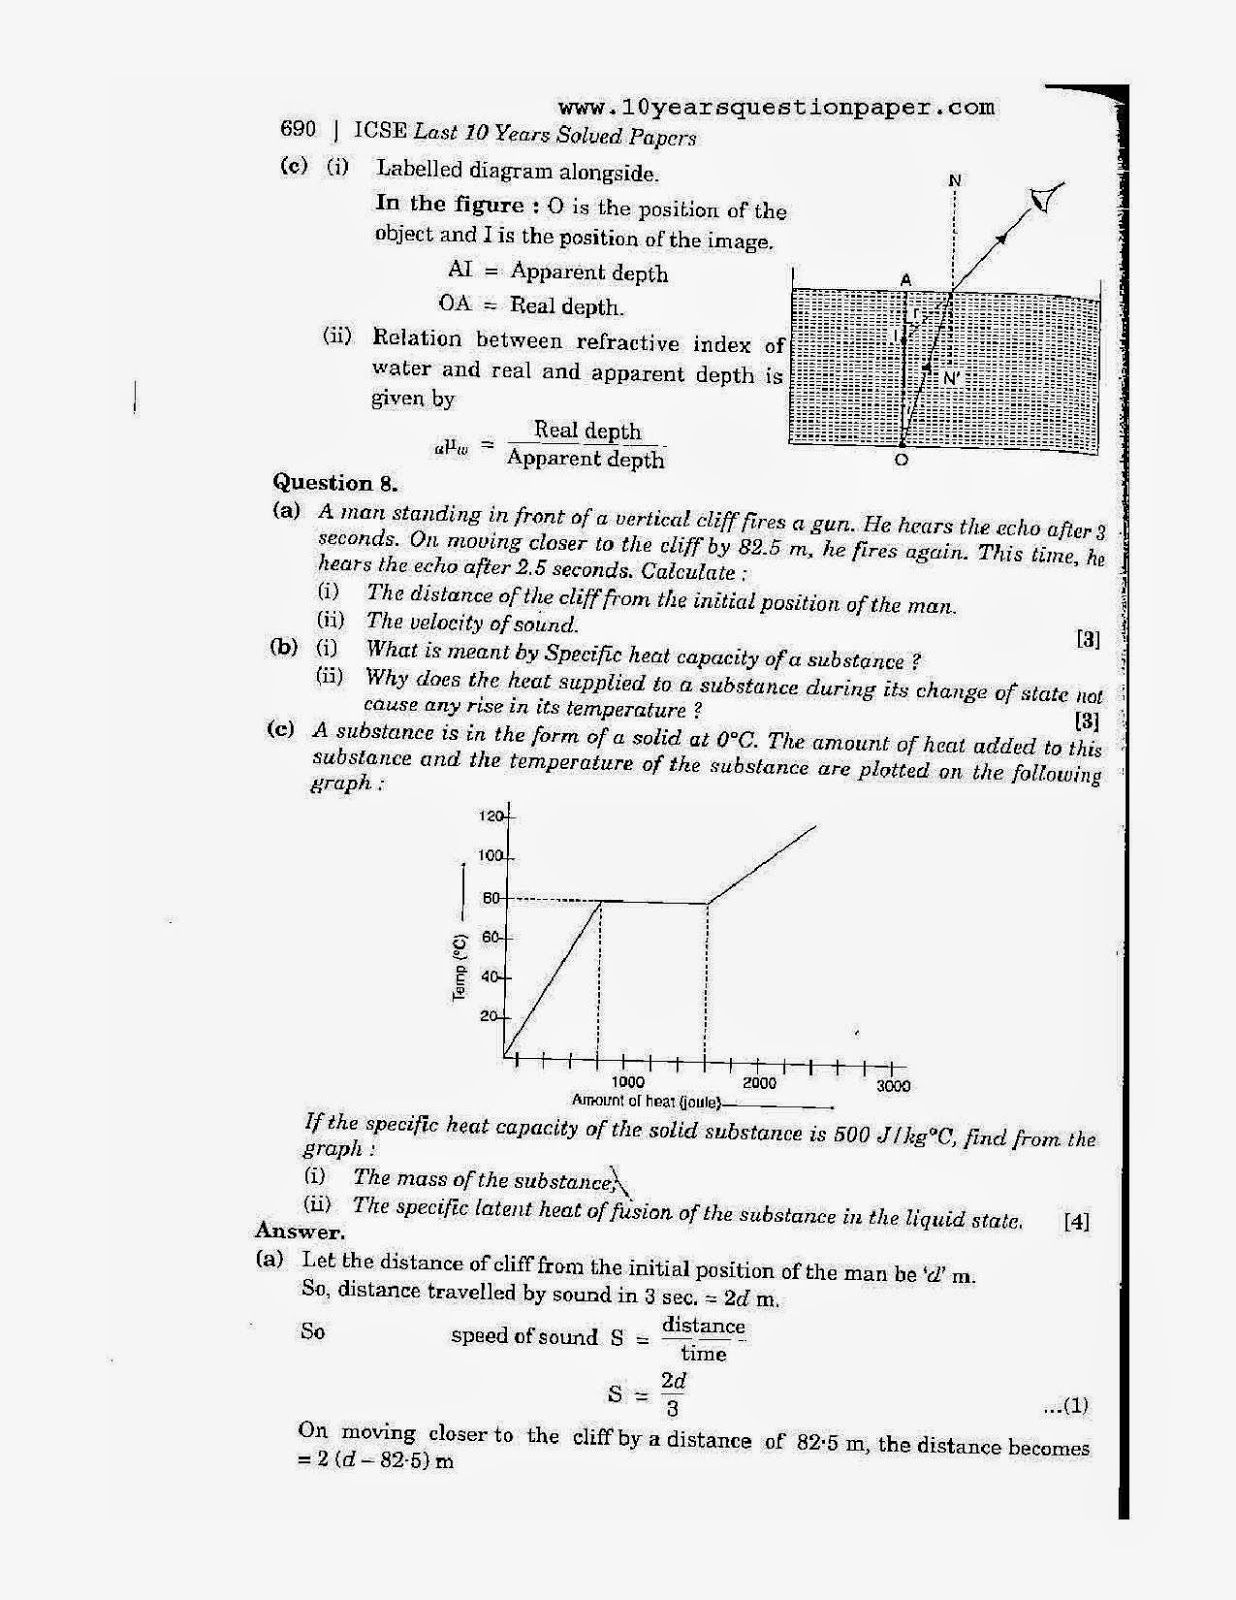 icse 2007 class 10th science physics paper 1 question paper